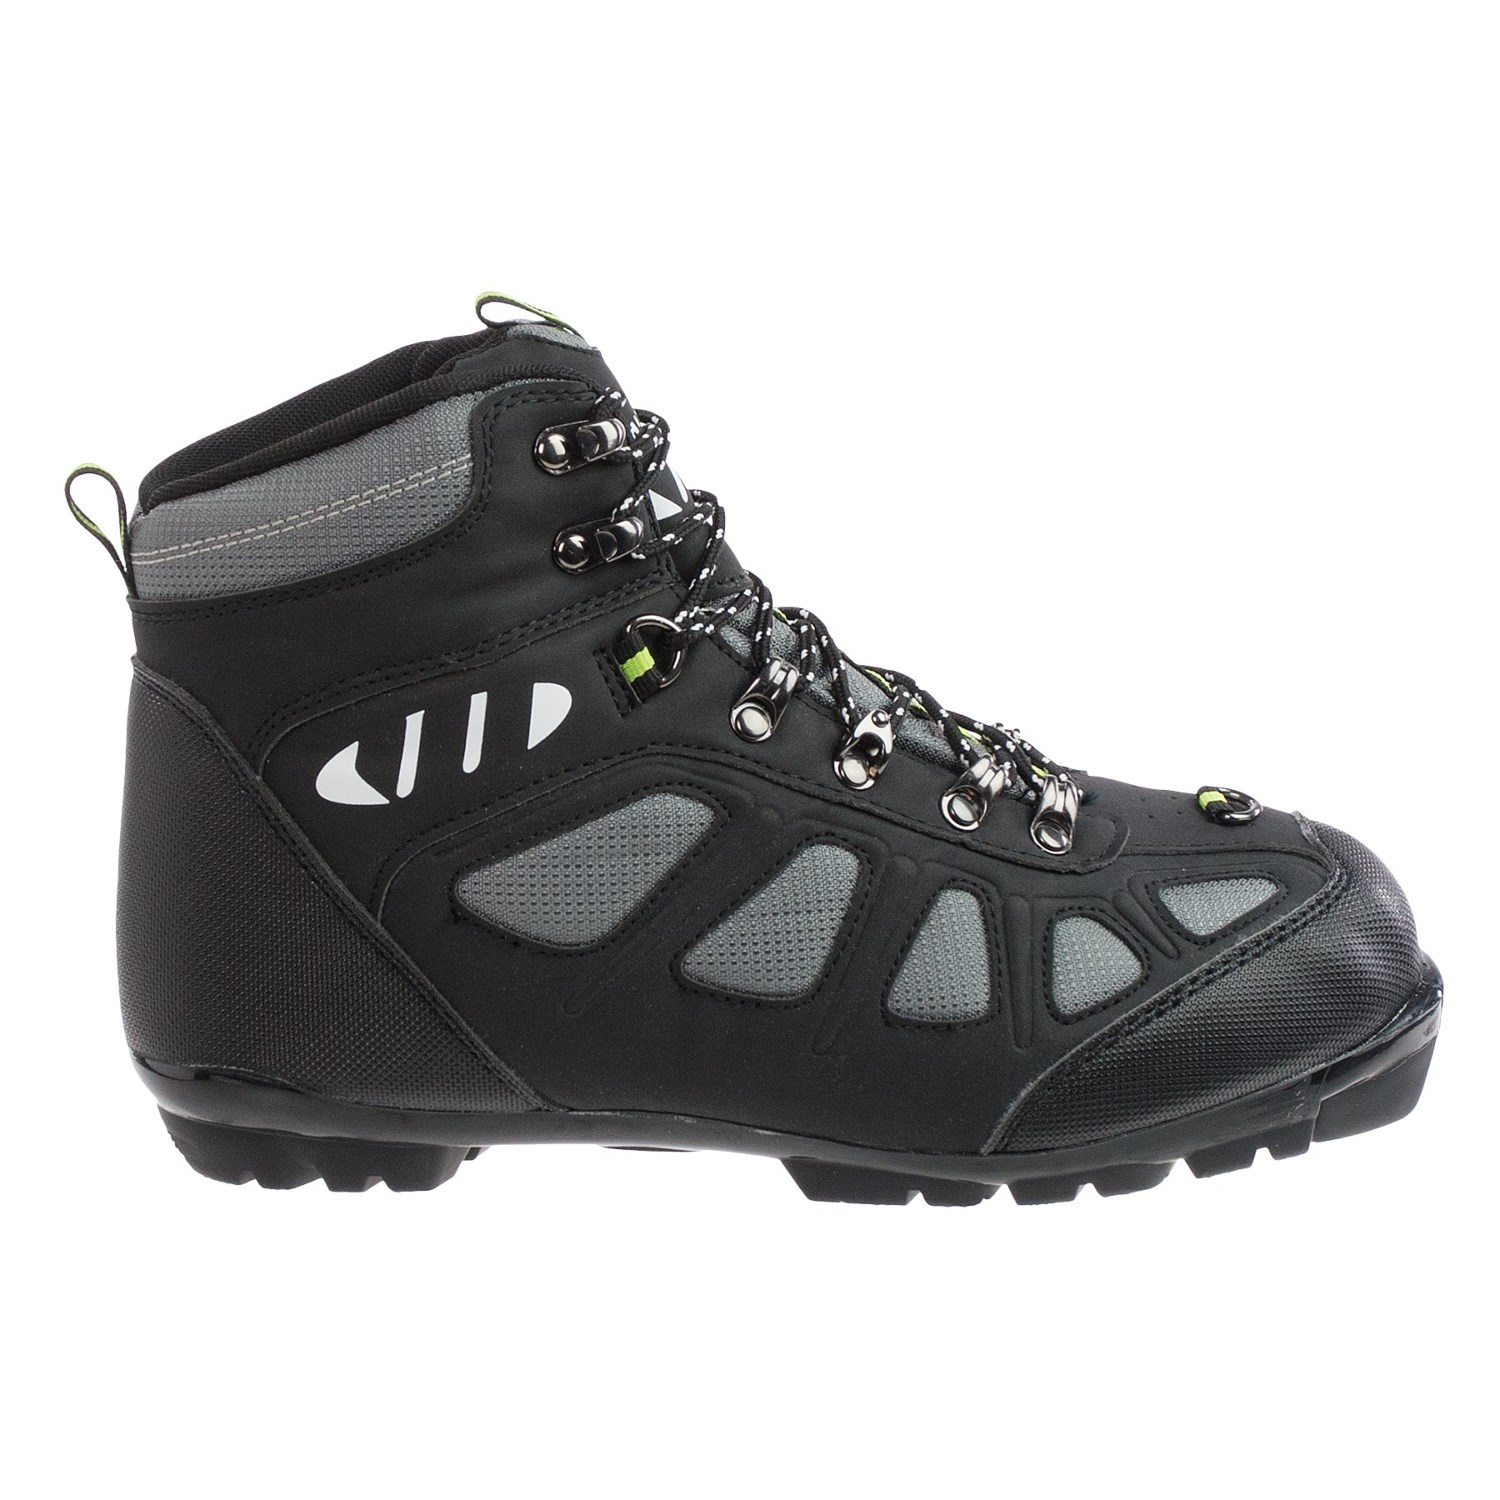 Whitewoods 302 Nordic Ski Boots For Men And Women Save 88